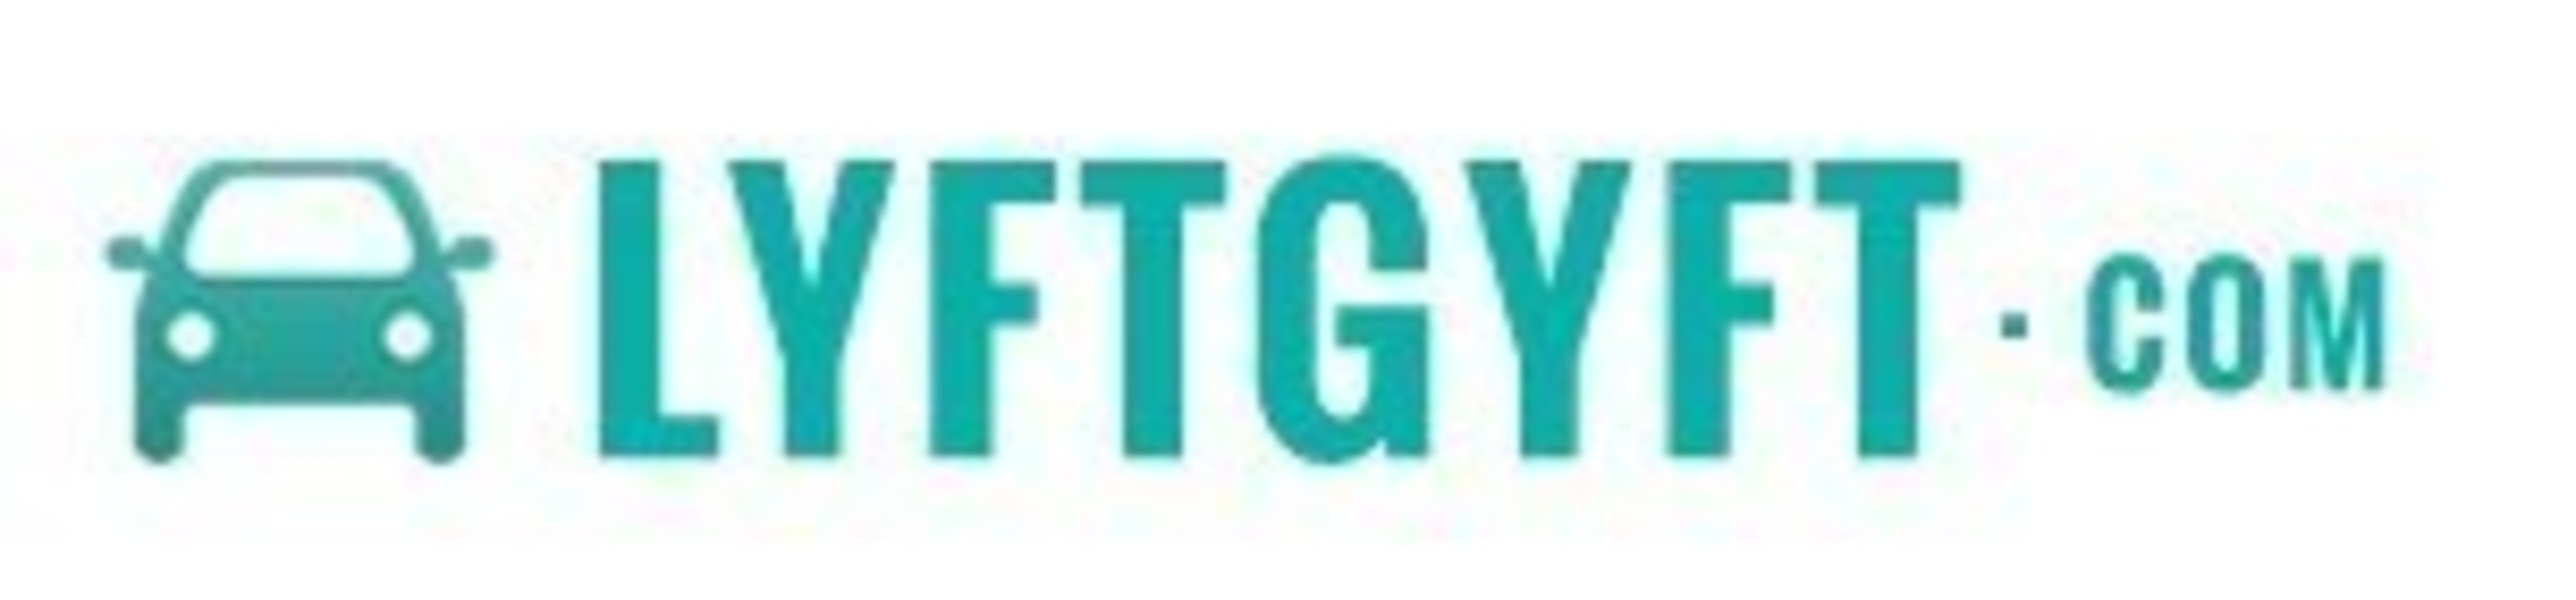 LyftGyft Offers Free Rides with Promo Codes